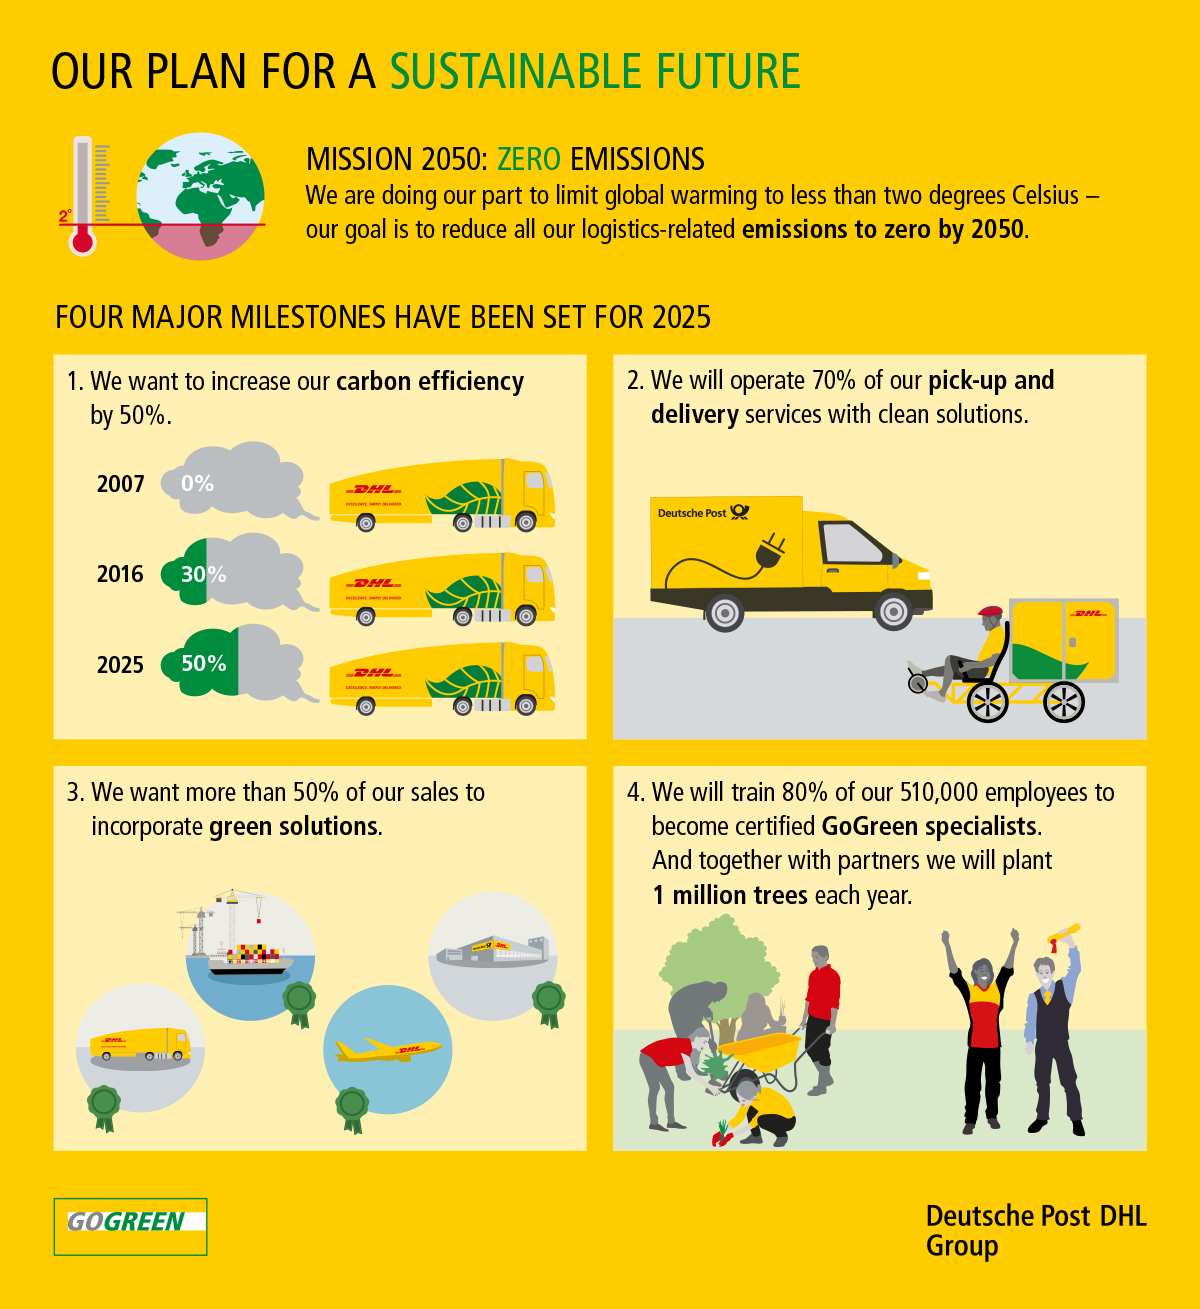 deutsche post dhl group commits to zero emissions logistics by 2050